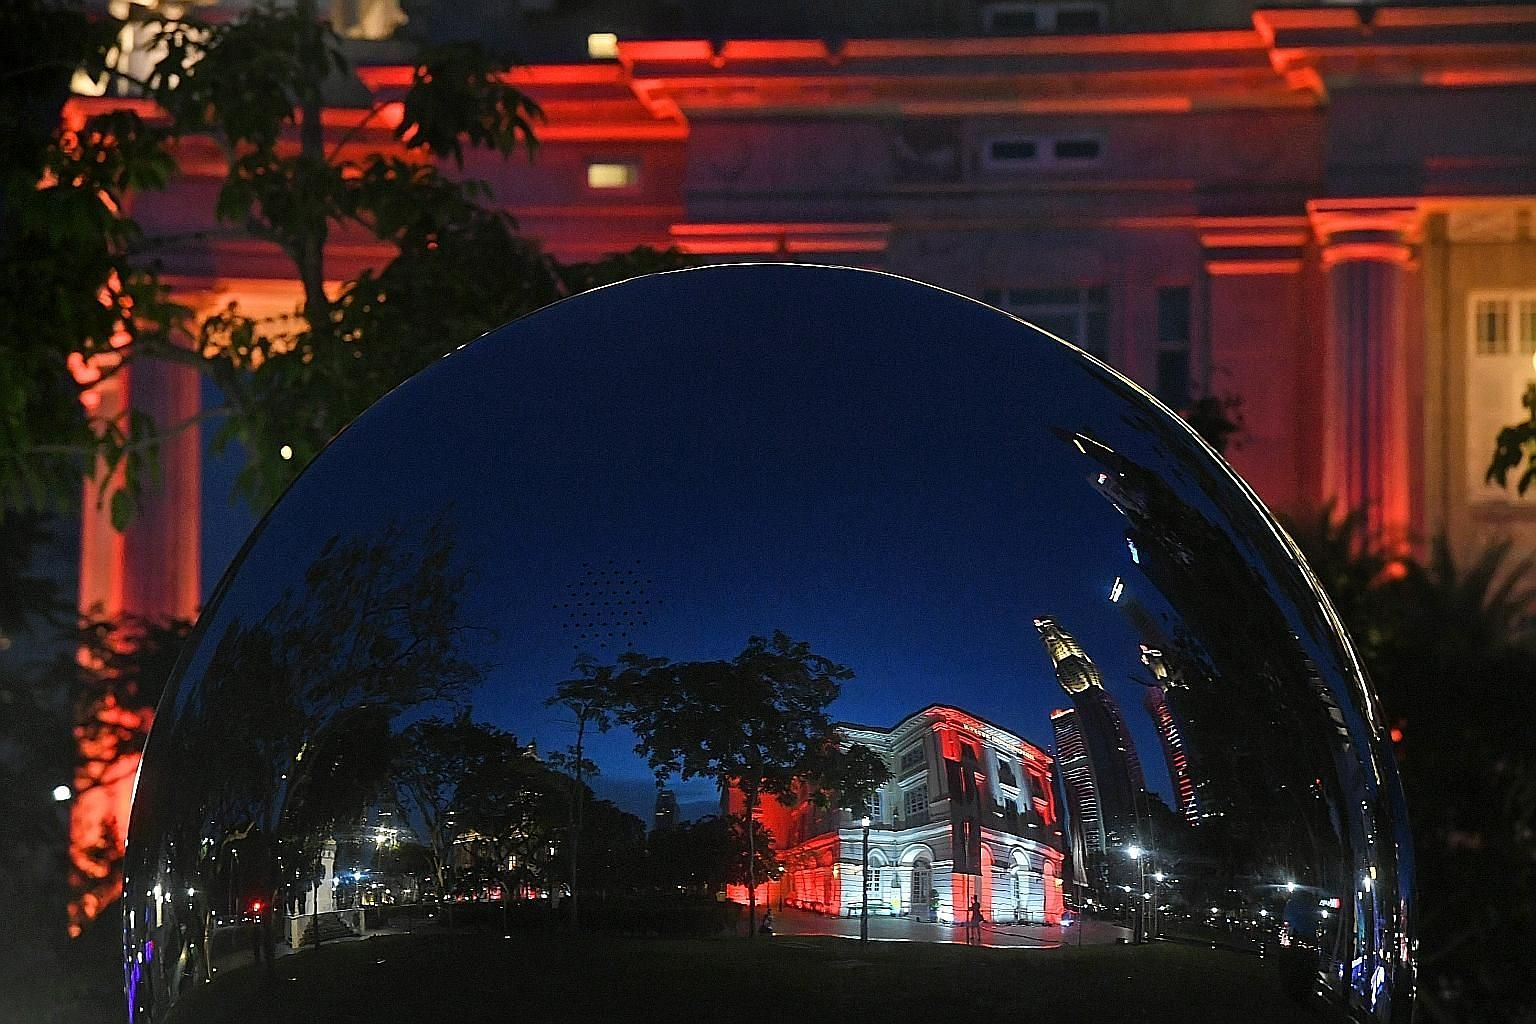 The Asian Civilisations Museum (above) and the Central Fire Station (left) are part of the light-up that will last till Aug 30.